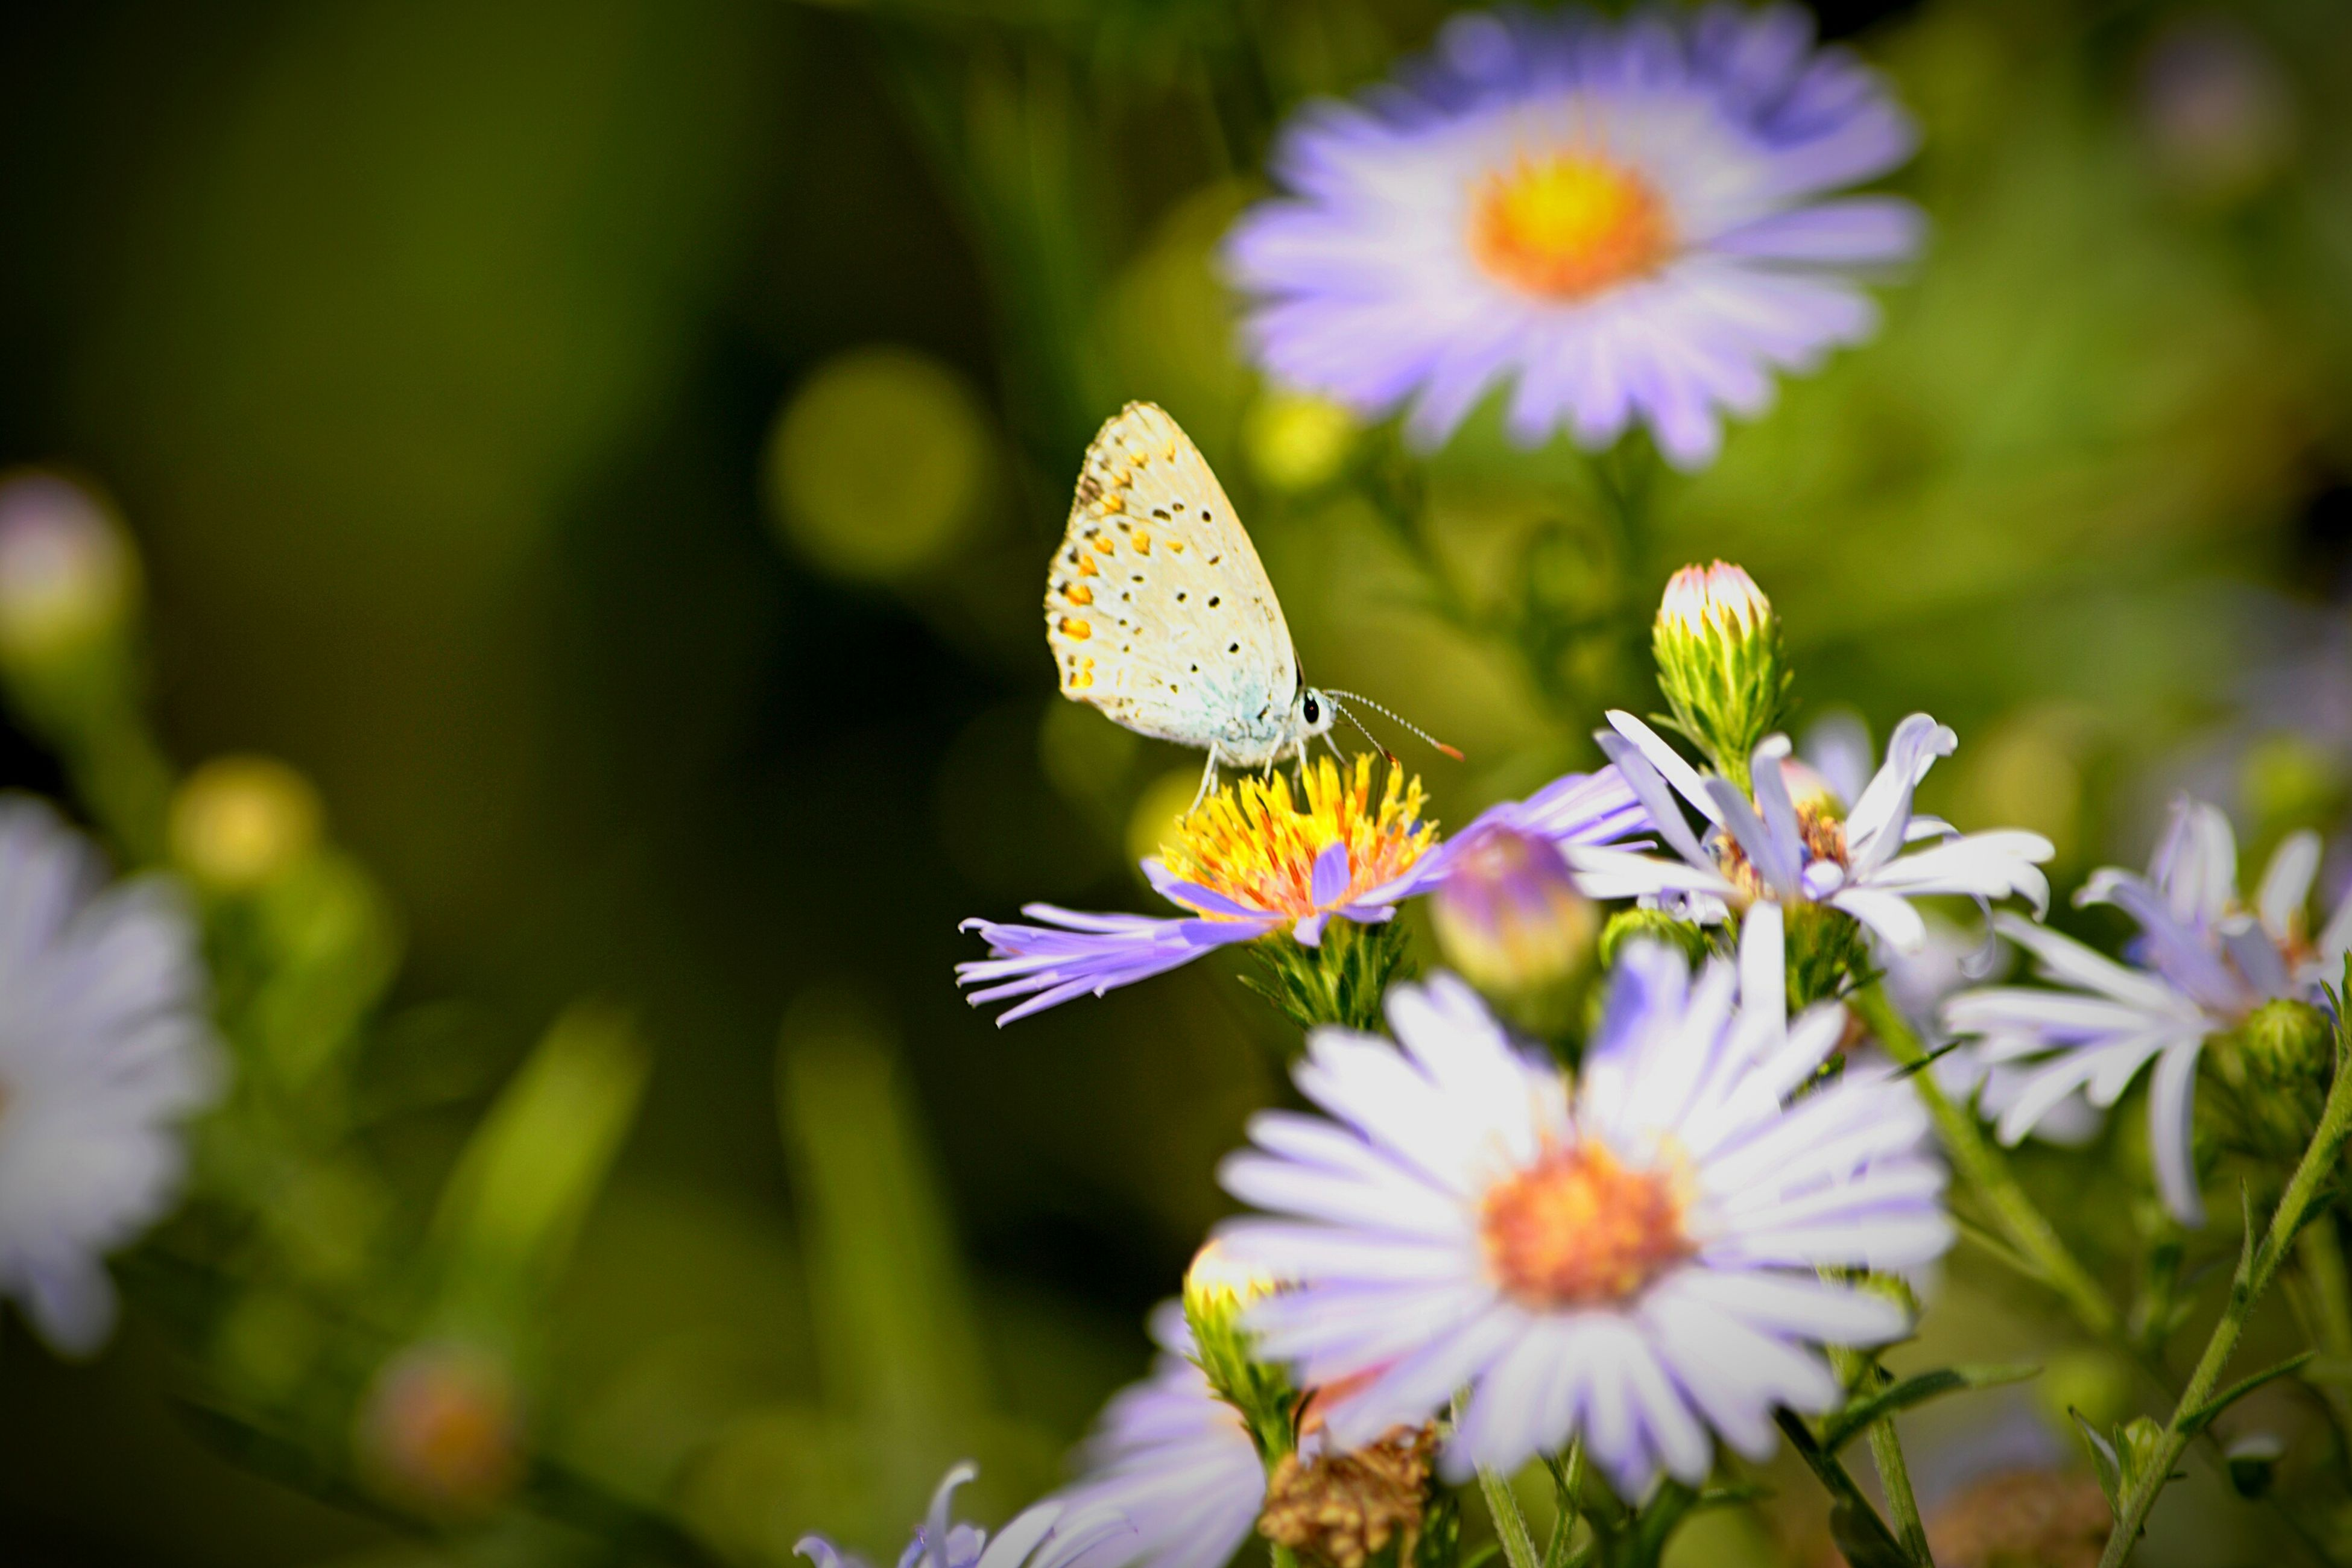 flower, beauty in nature, nature, fragility, insect, freshness, petal, growth, close-up, butterfly - insect, purple, outdoors, flower head, plant, day, no people, one animal, animal themes, animals in the wild, pollination